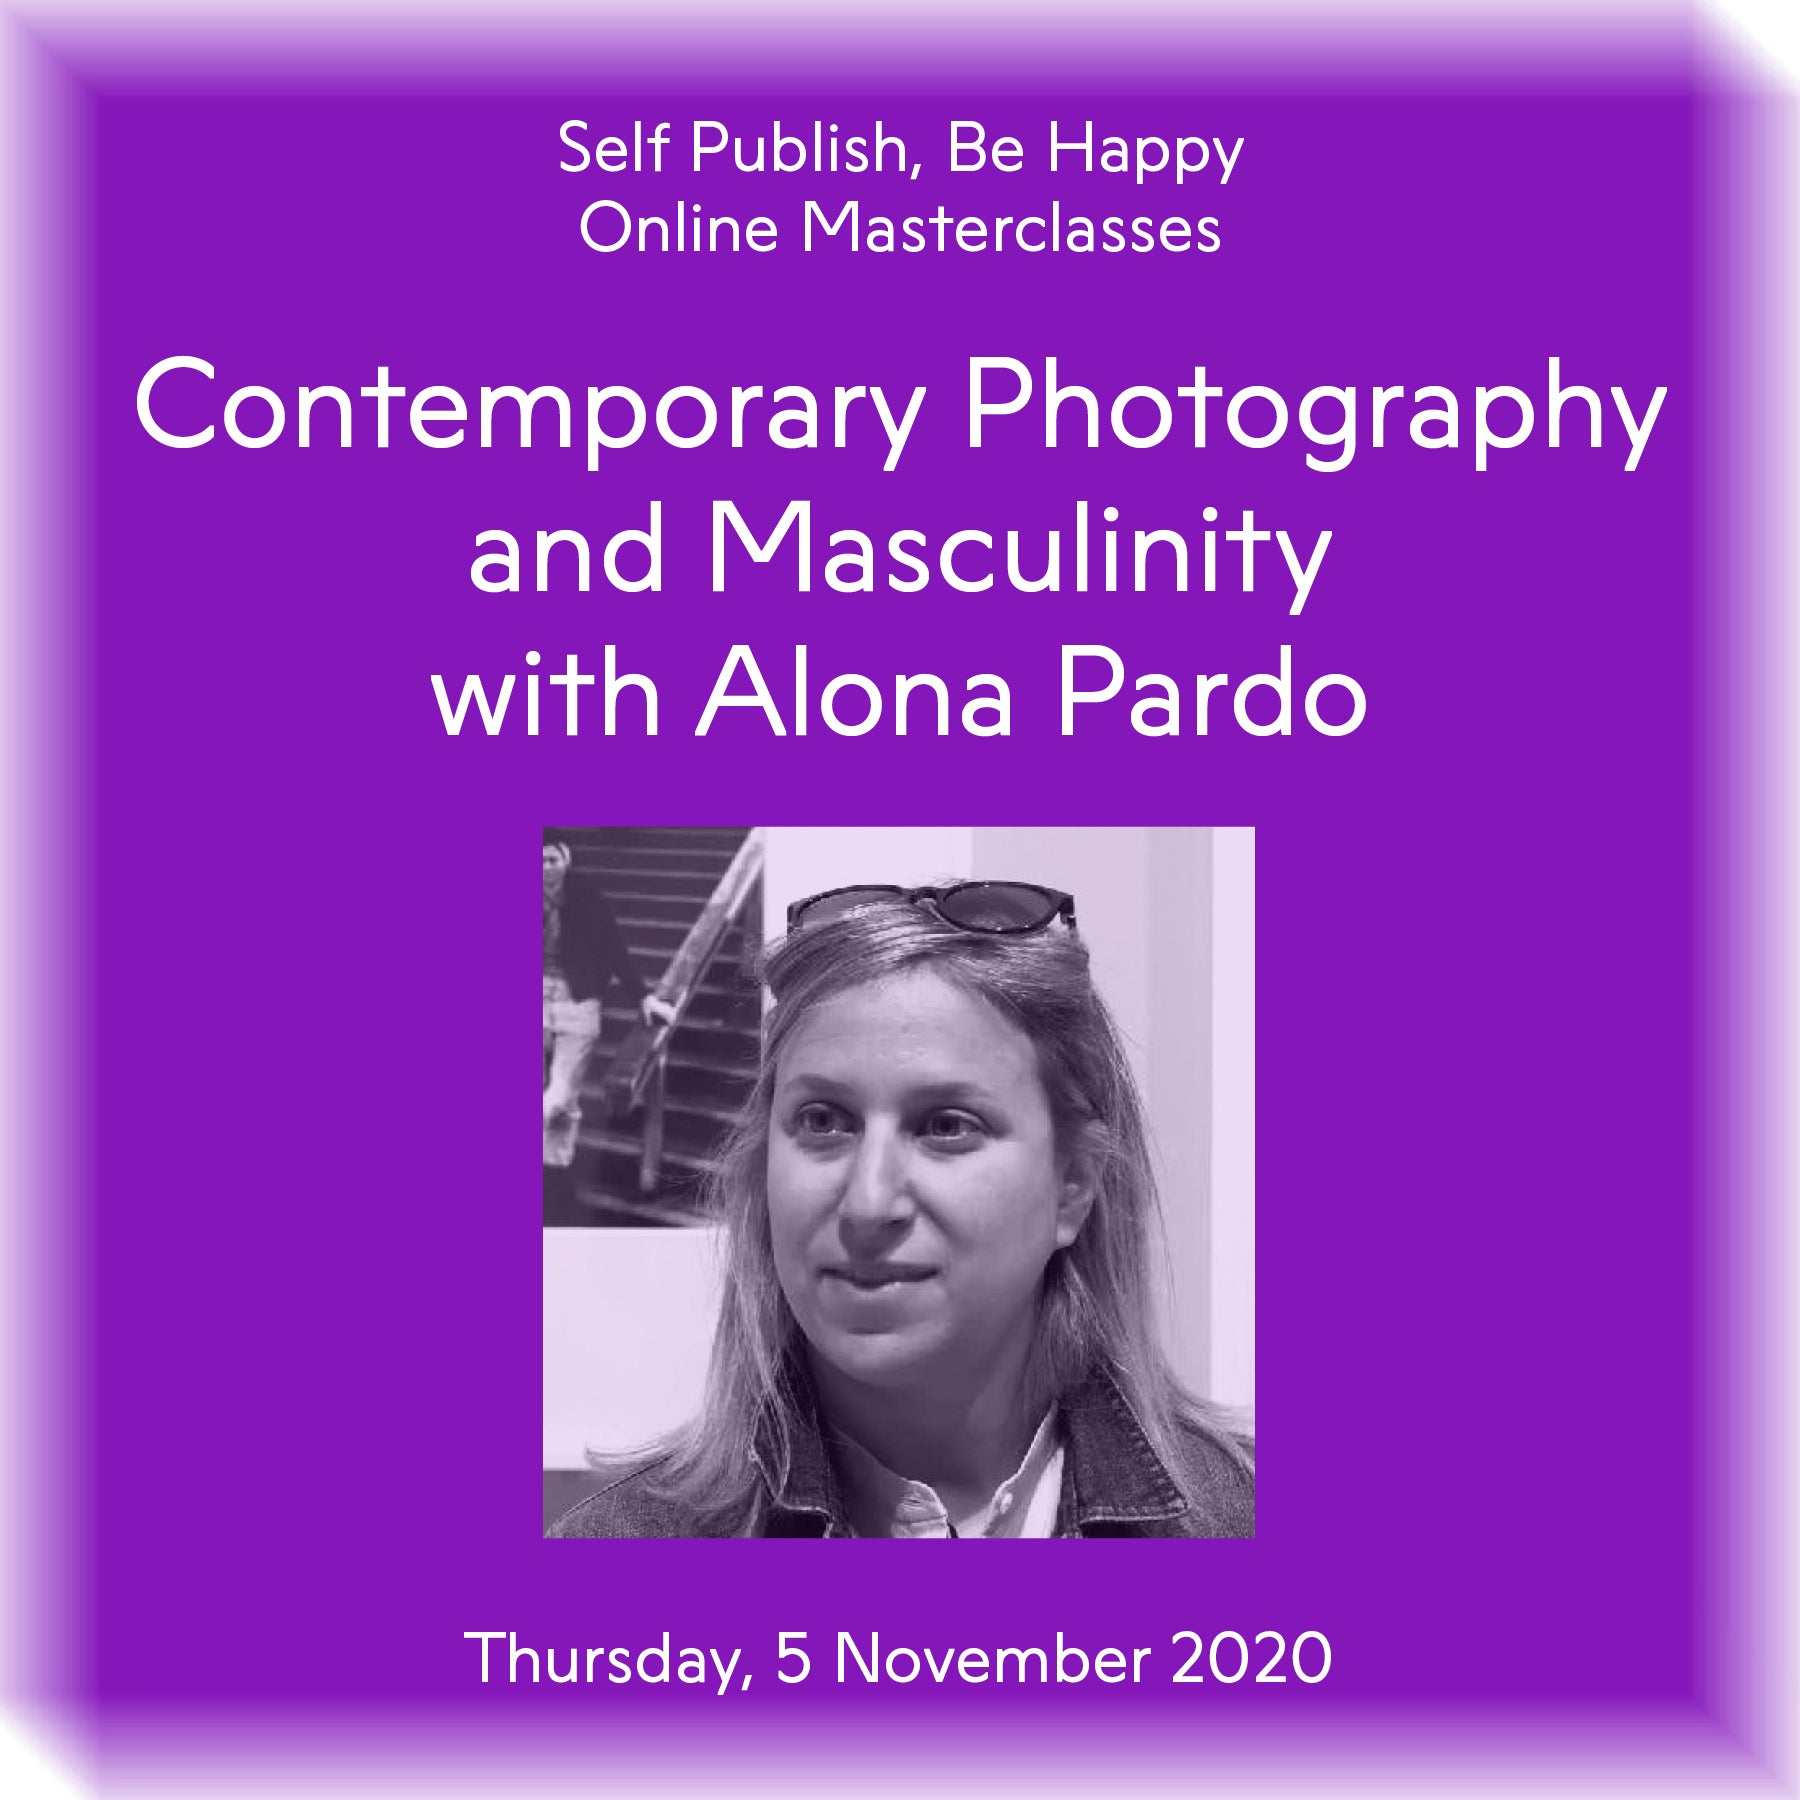 Contemporary Photography and Masculinity with Alona Pardo